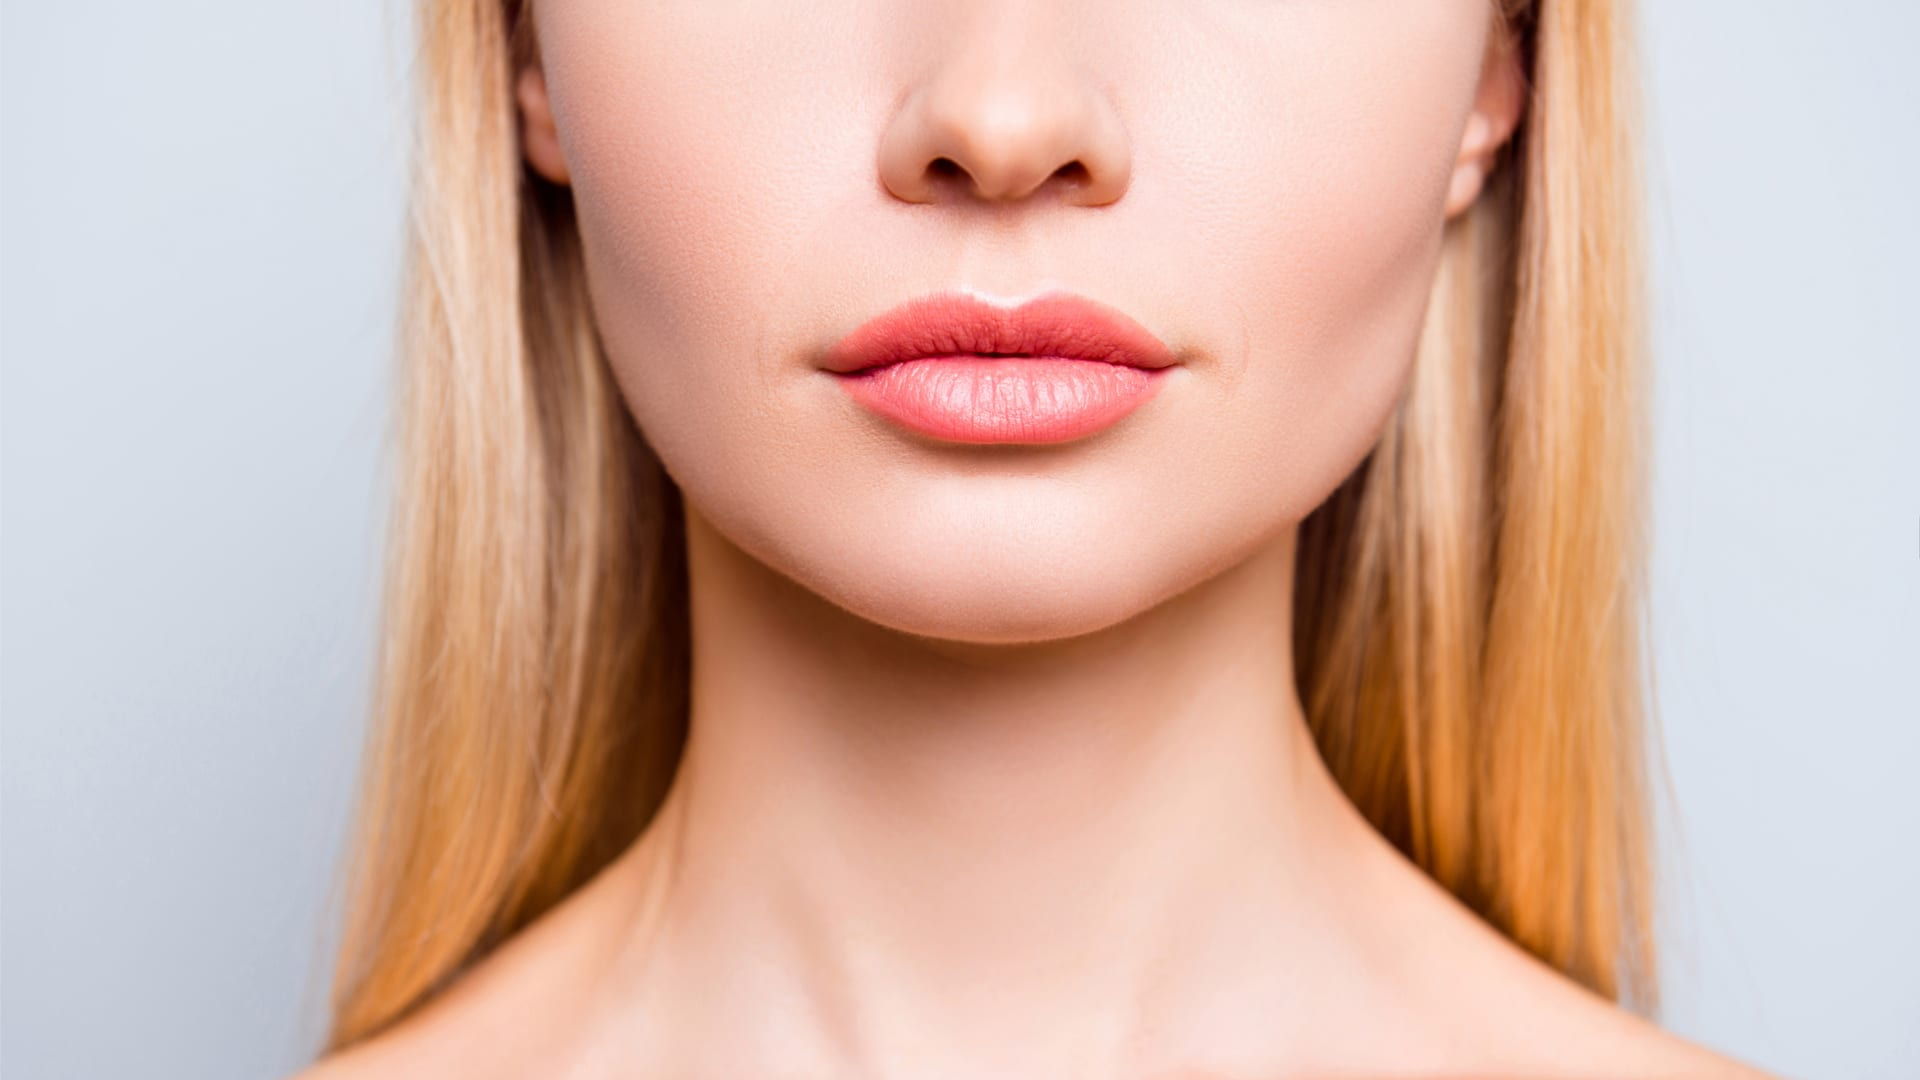 How to treat mouth wrinkles and beat the barcode effect.